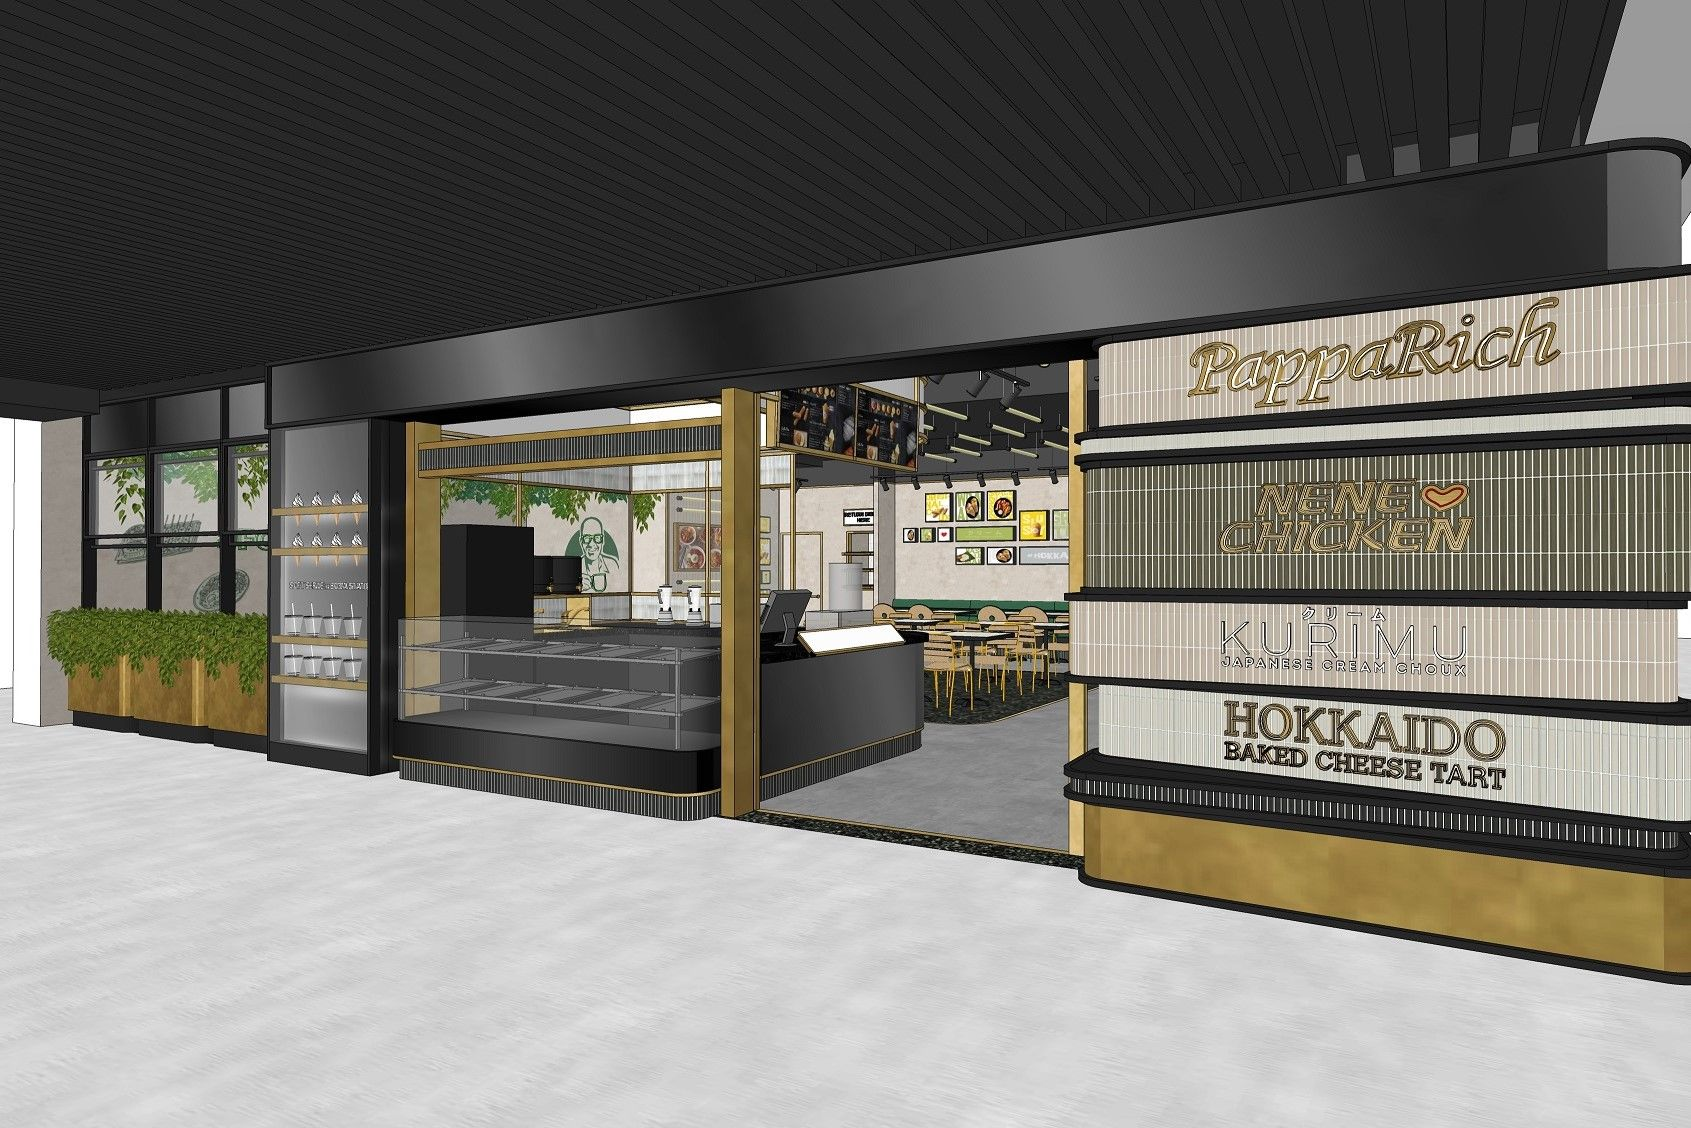 ST Group launches new concept   Inside Franchise Business Executive